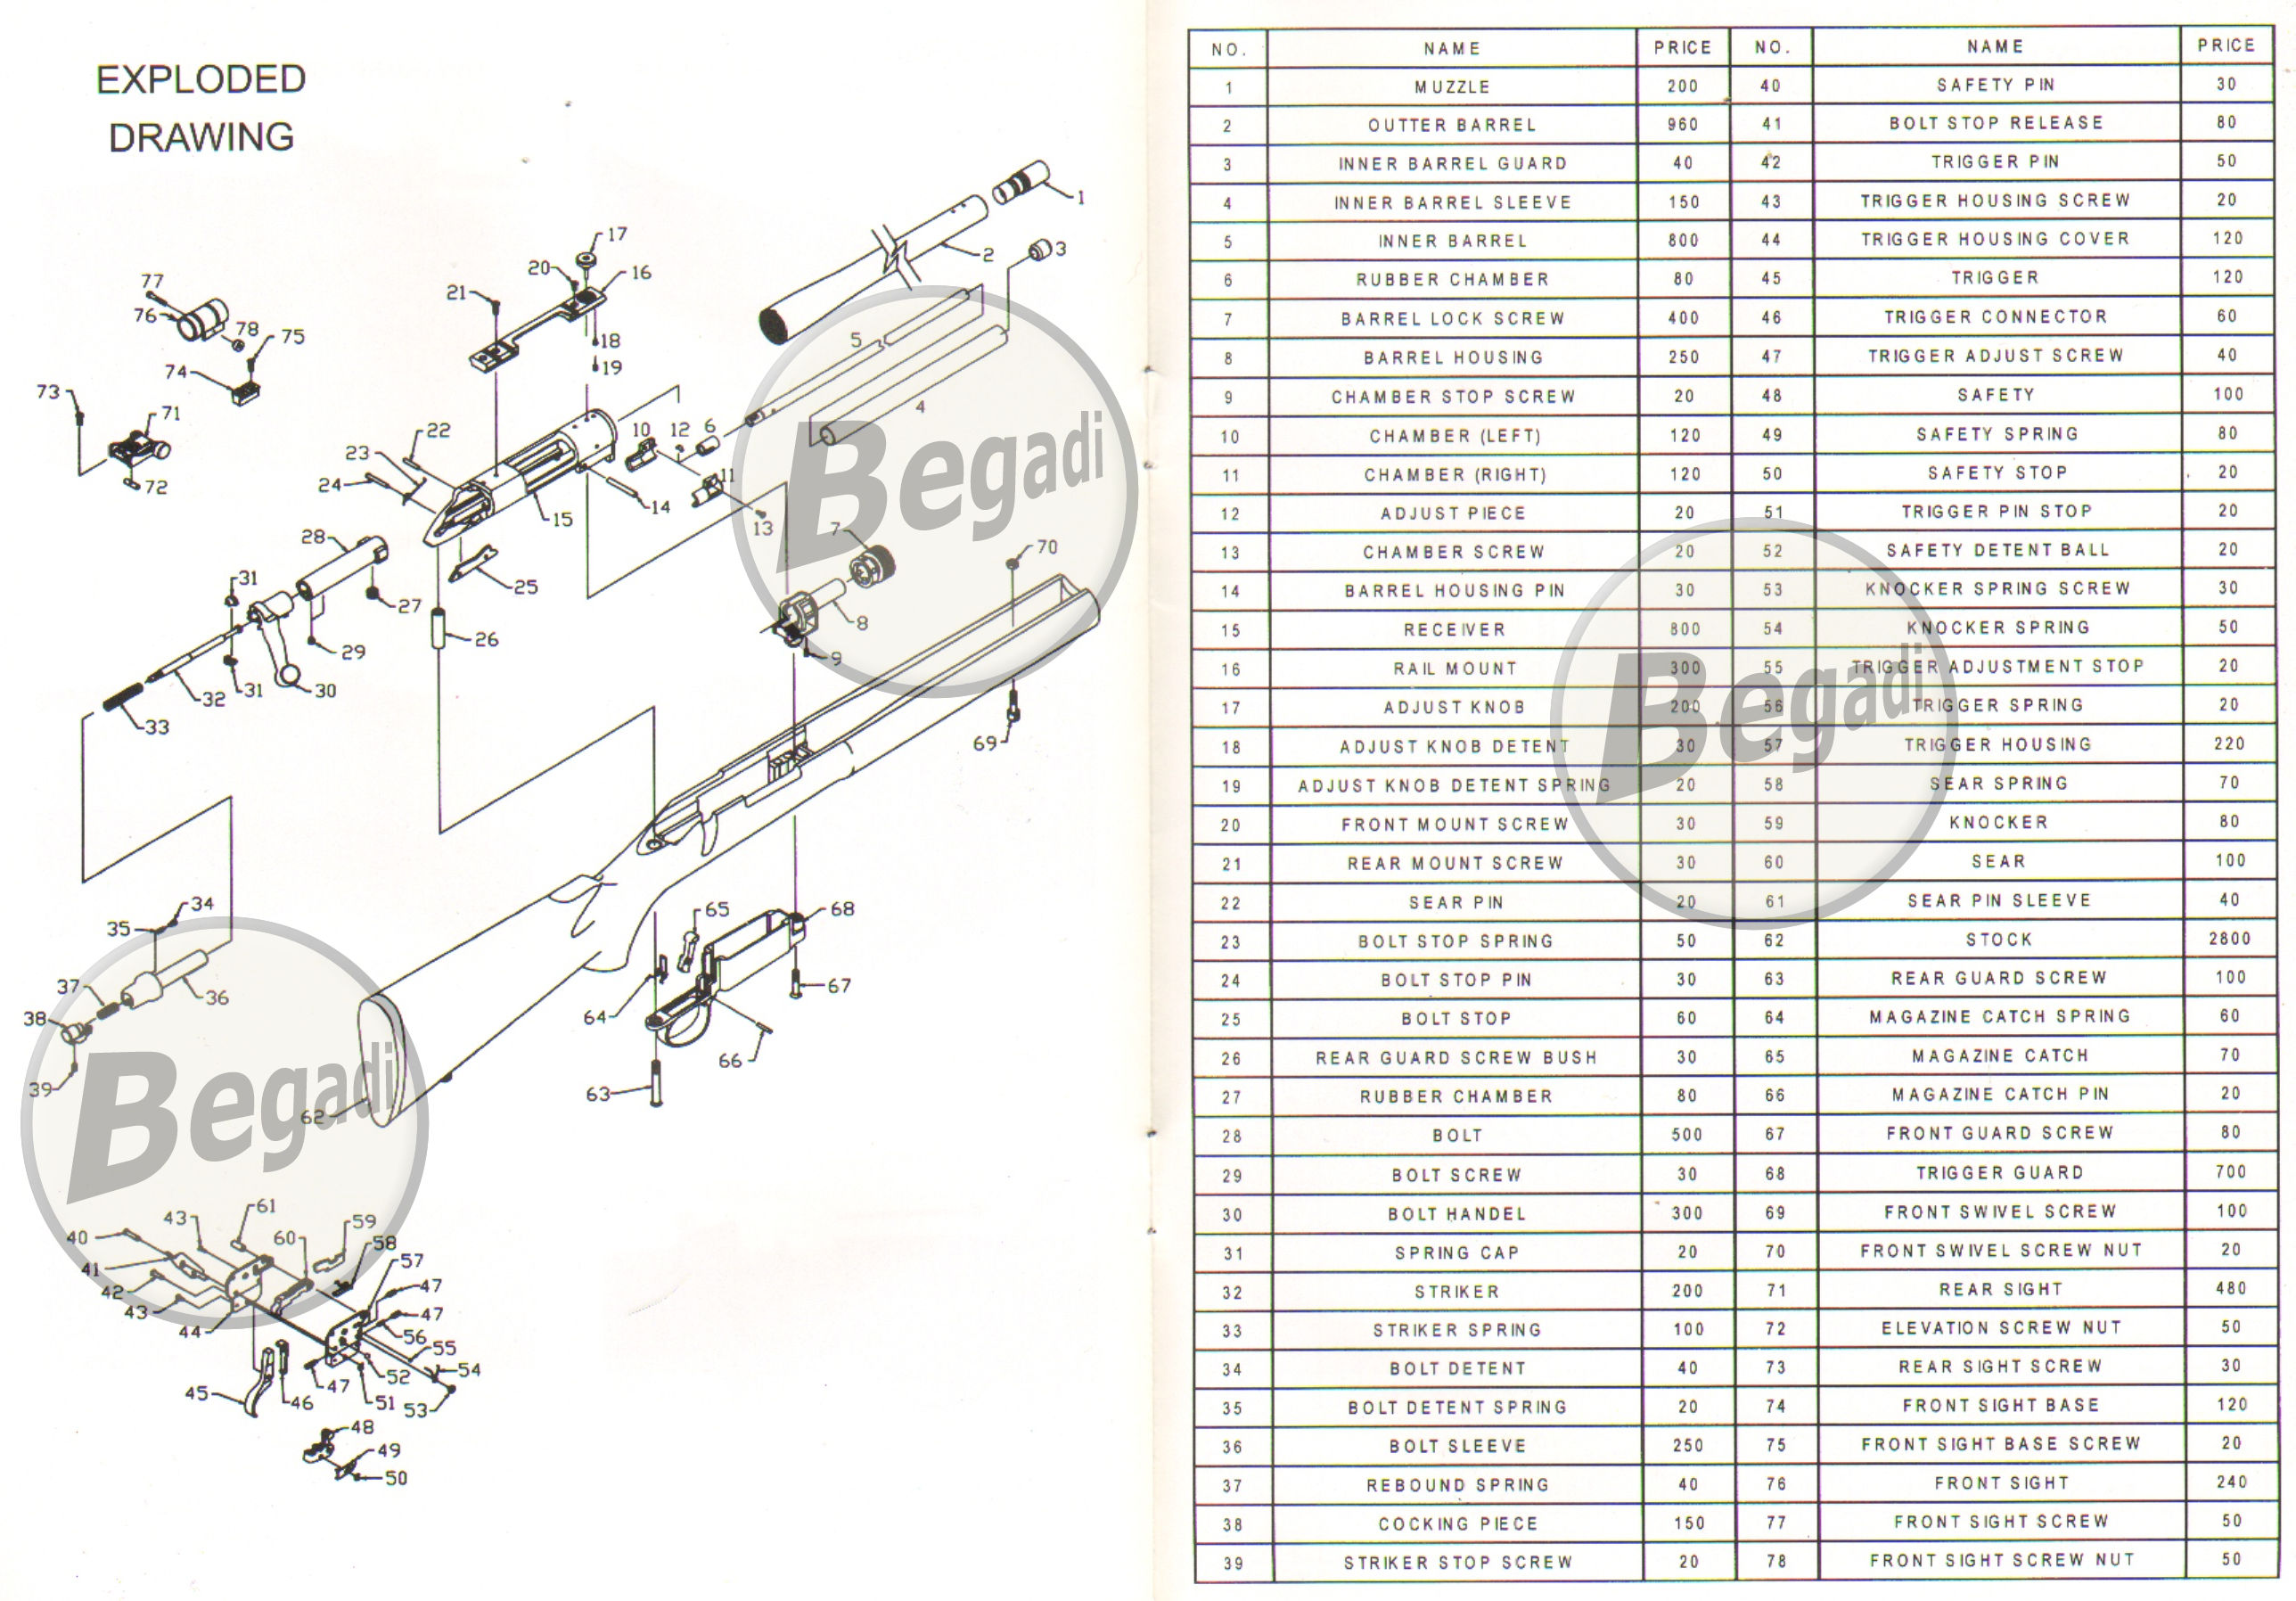 browning hi power parts diagram generator auto start wiring kjw m700 part no 27 33 bsp 2 bolt mit